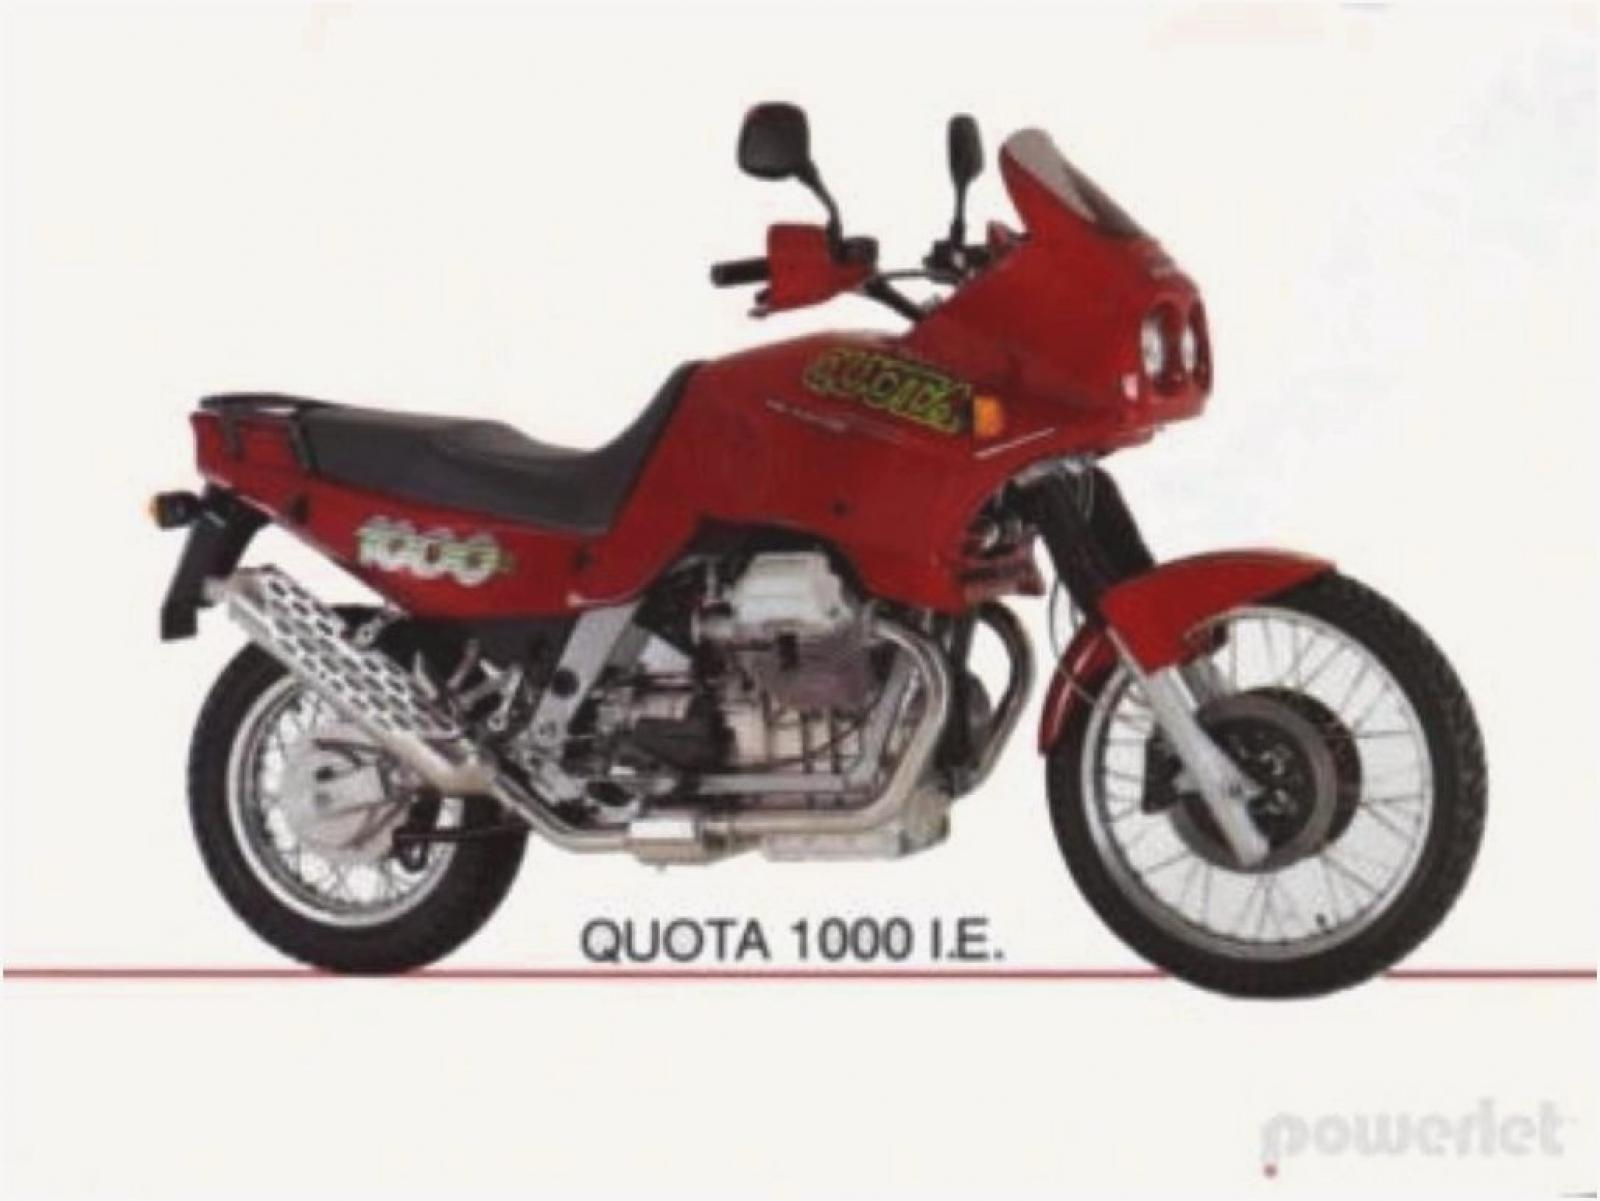 Moto Guzzi 1000 Daytona Injection images #108594